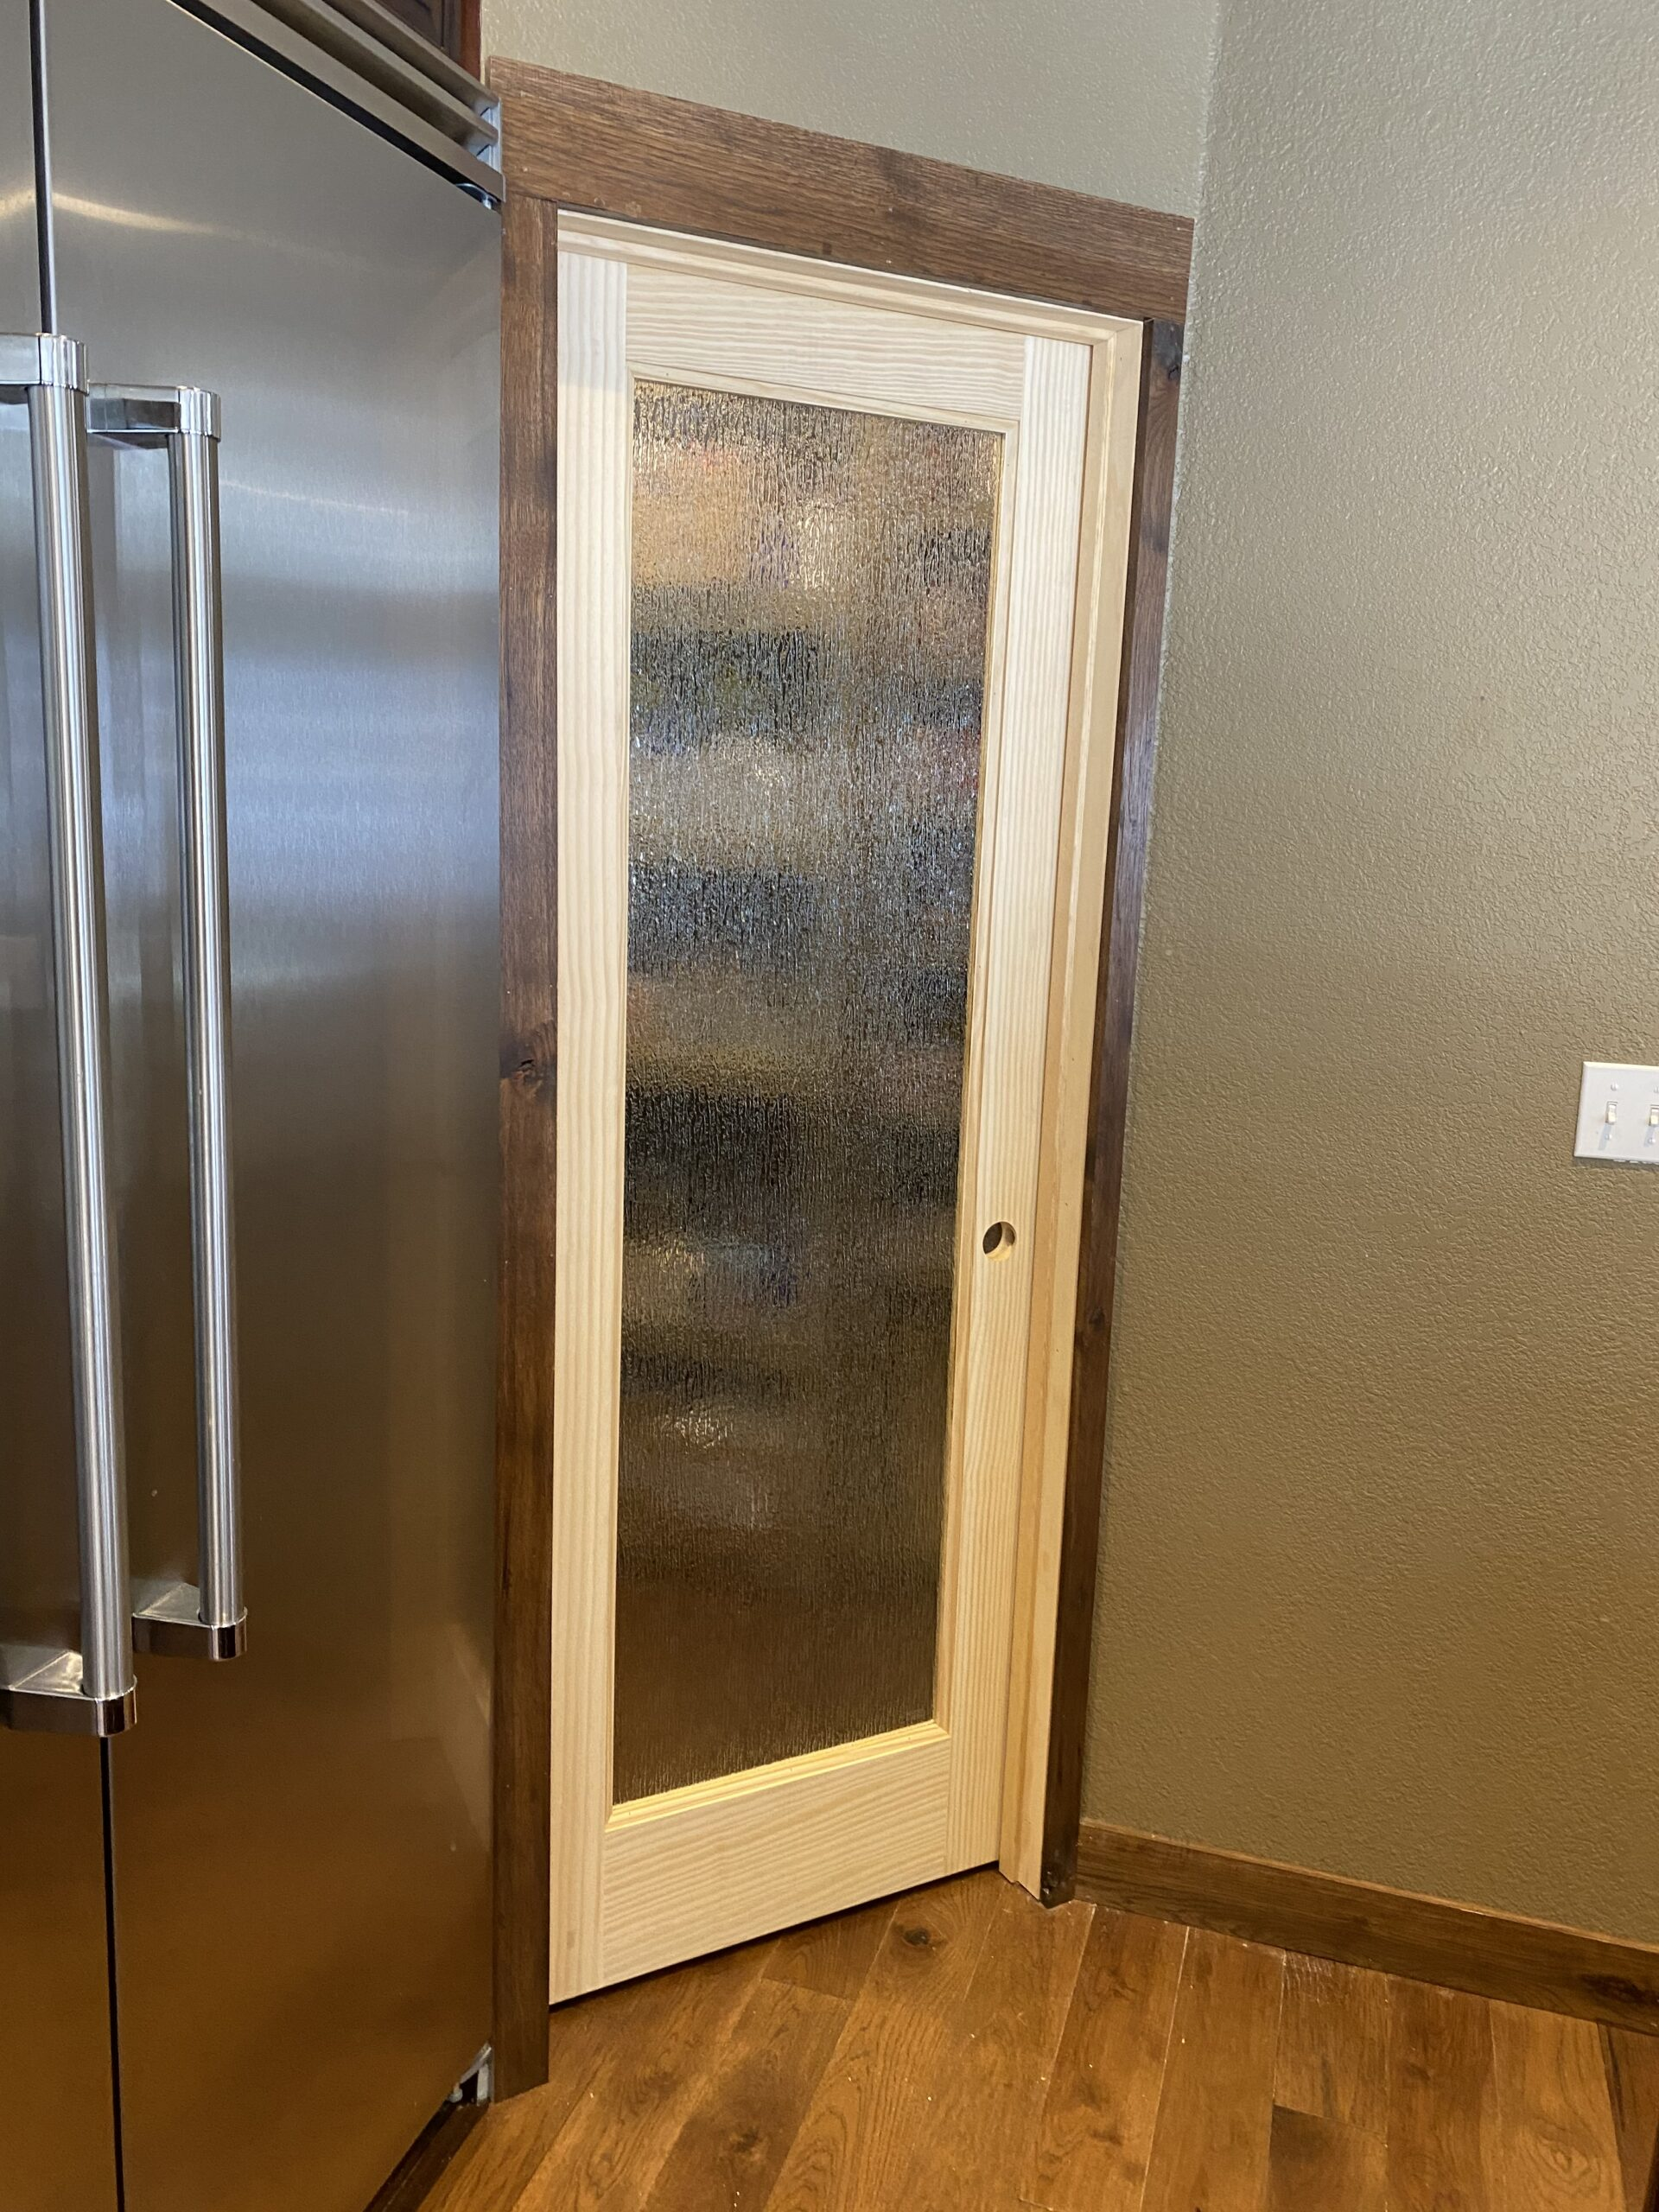 On right of stainless steel refridgerator is pine wood framed door with full pane of obscurity glass